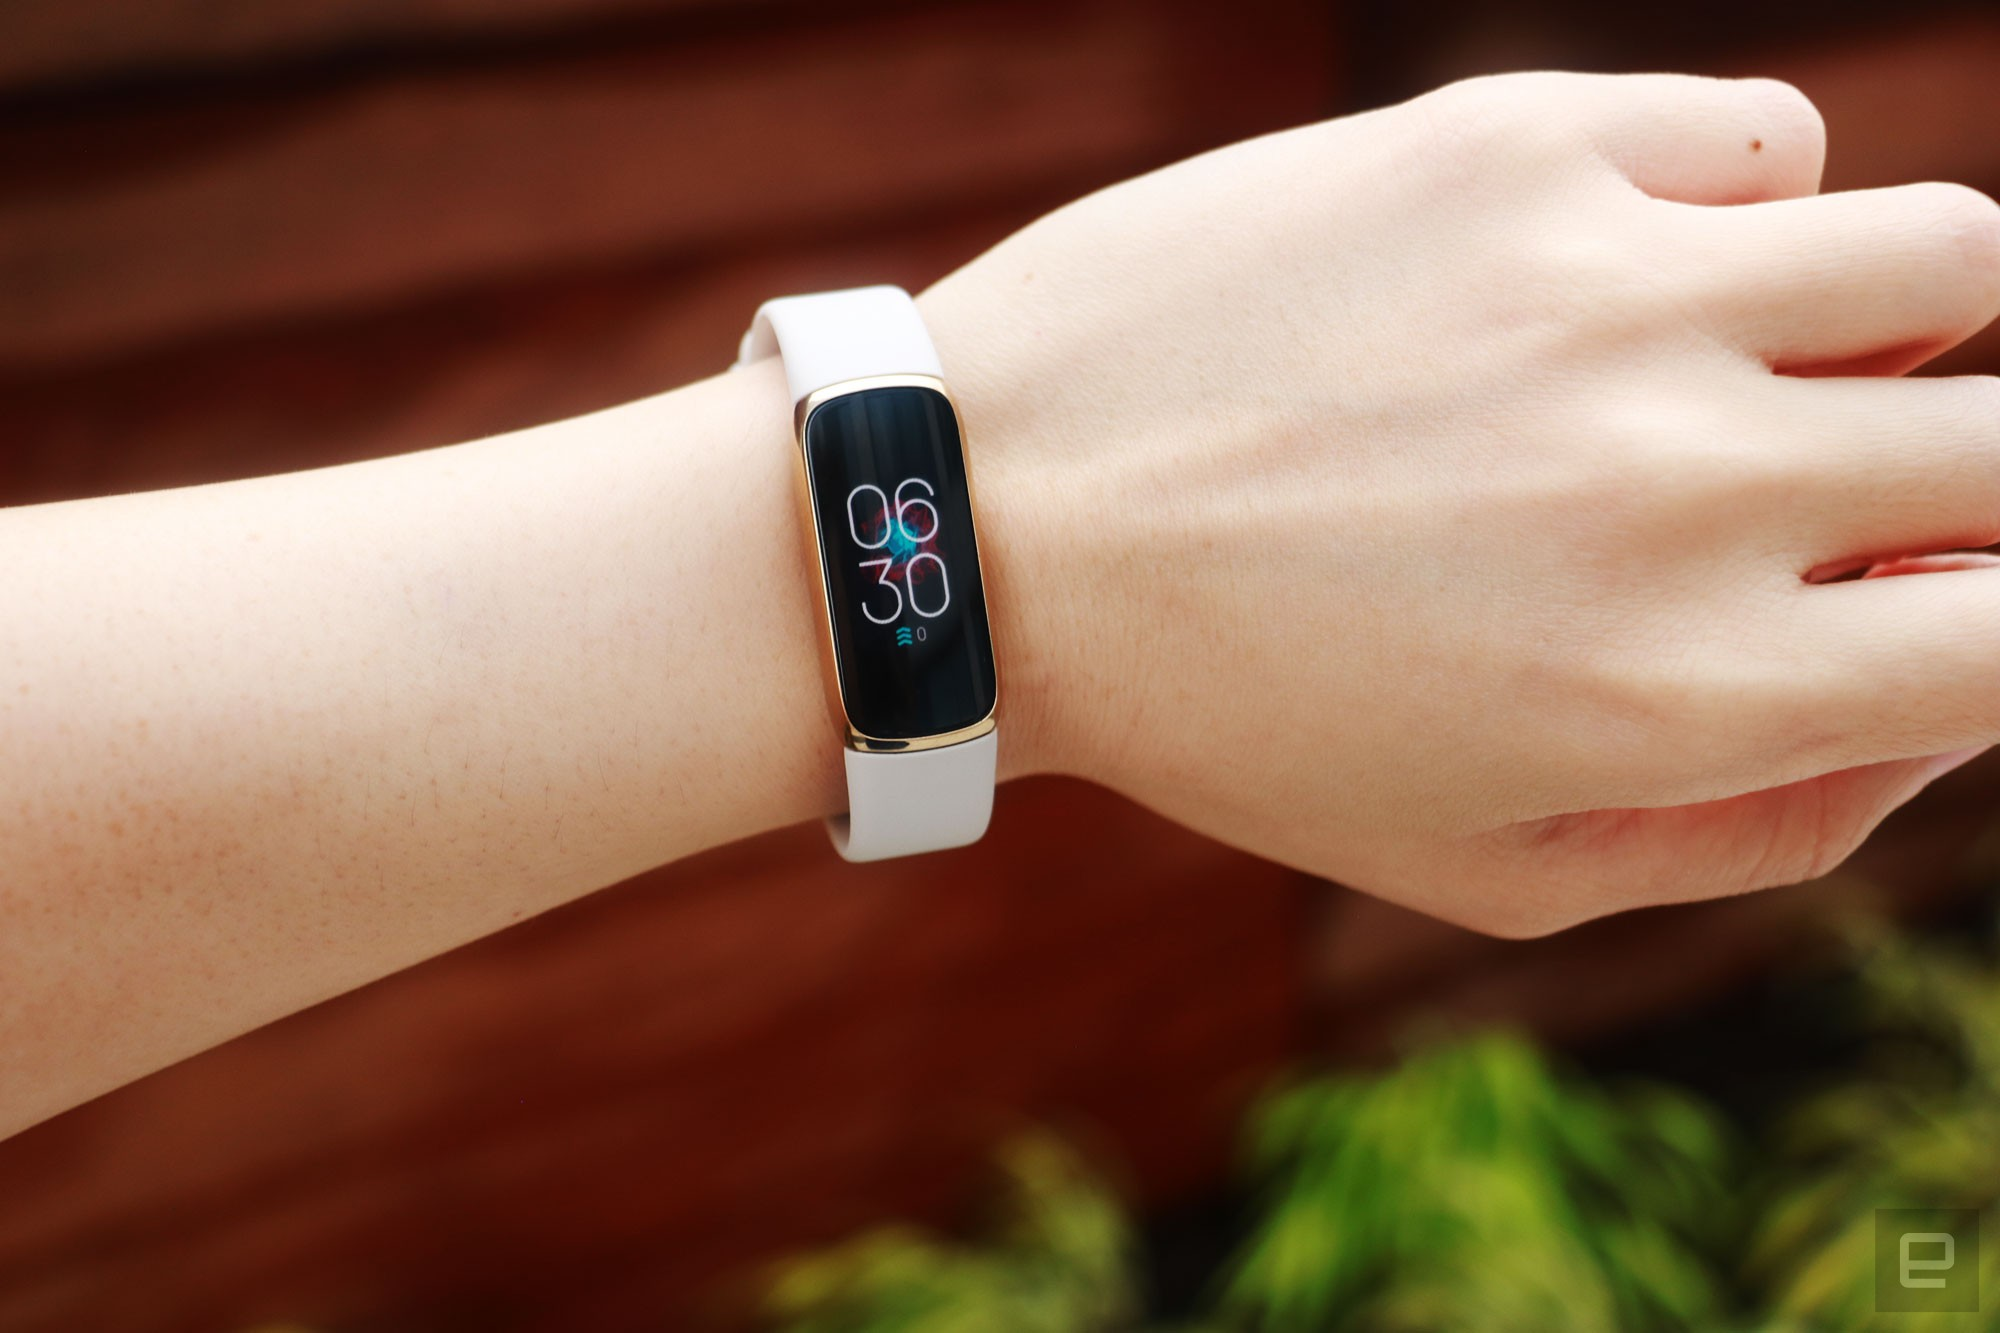 <p>Front view of the Fitbit Luxe with a light pink silicone band on a wrist against a dark brown background with some greenery. The screen shows the time is 6:30pm.</p>